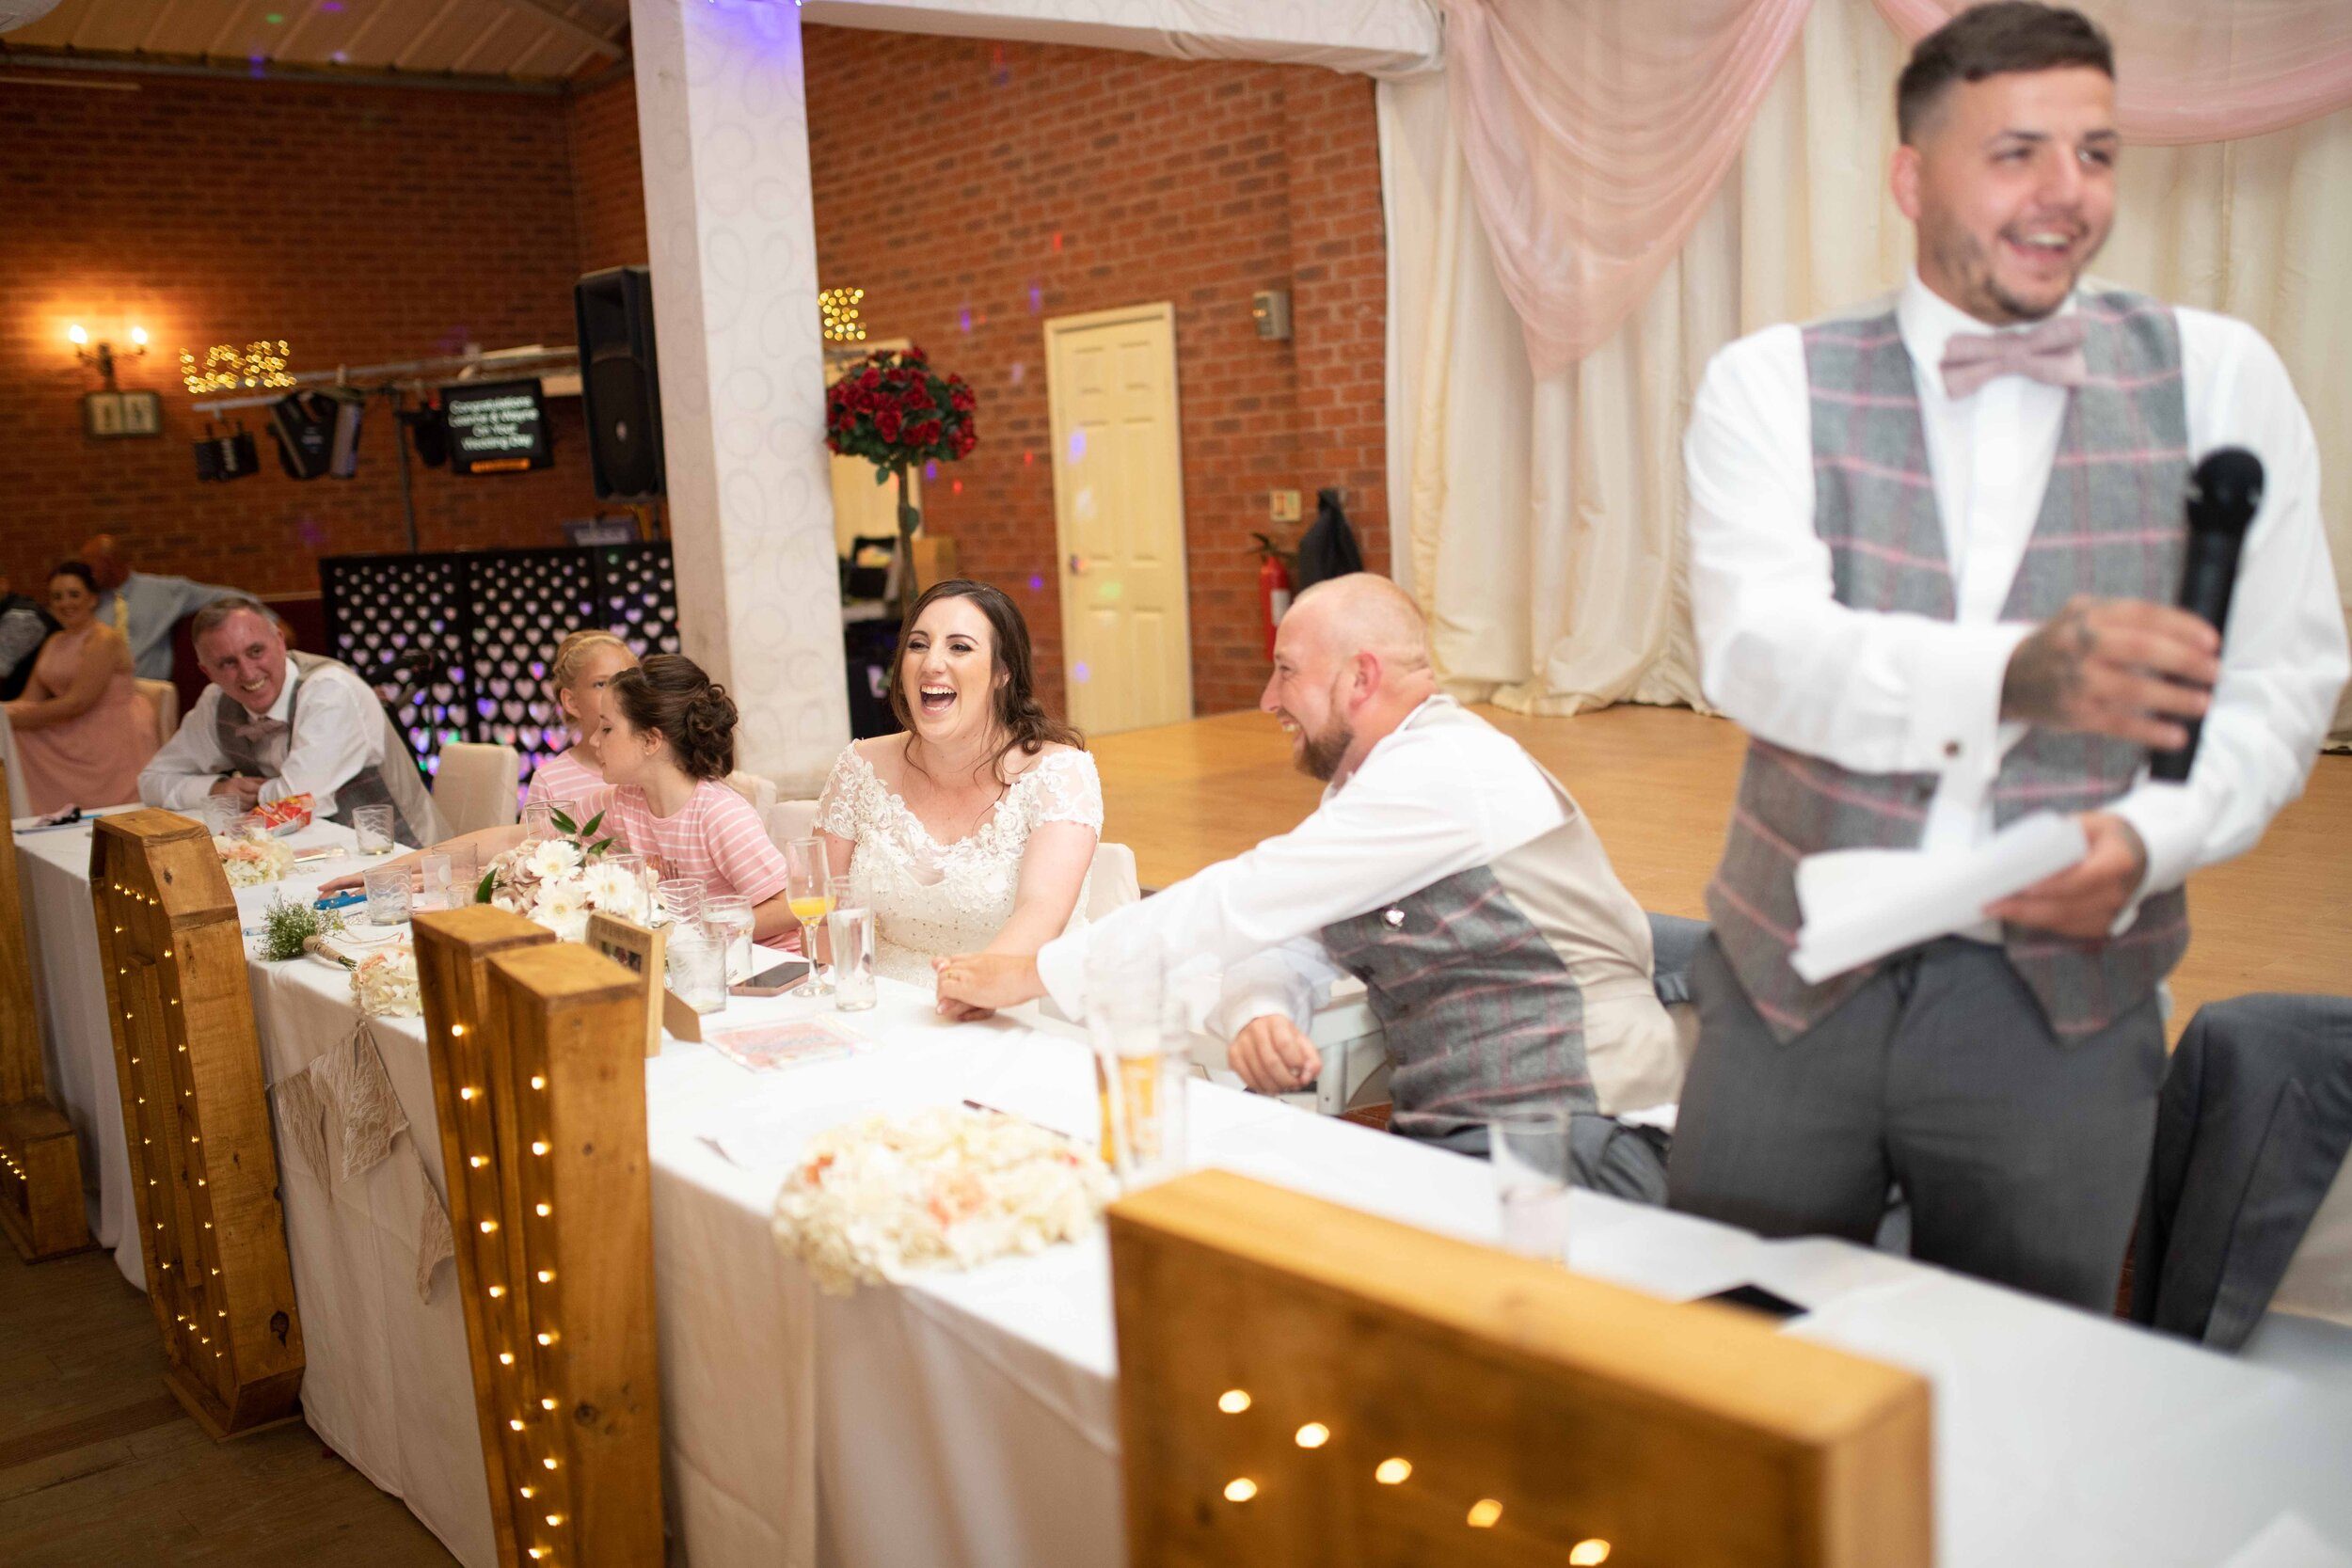 Lea Cooper photography - wedding photography - st Lawrence church dalaston West Midlands Willenhall Wednesday wedding photographer Brookfields club house cannock road - 33.JPG